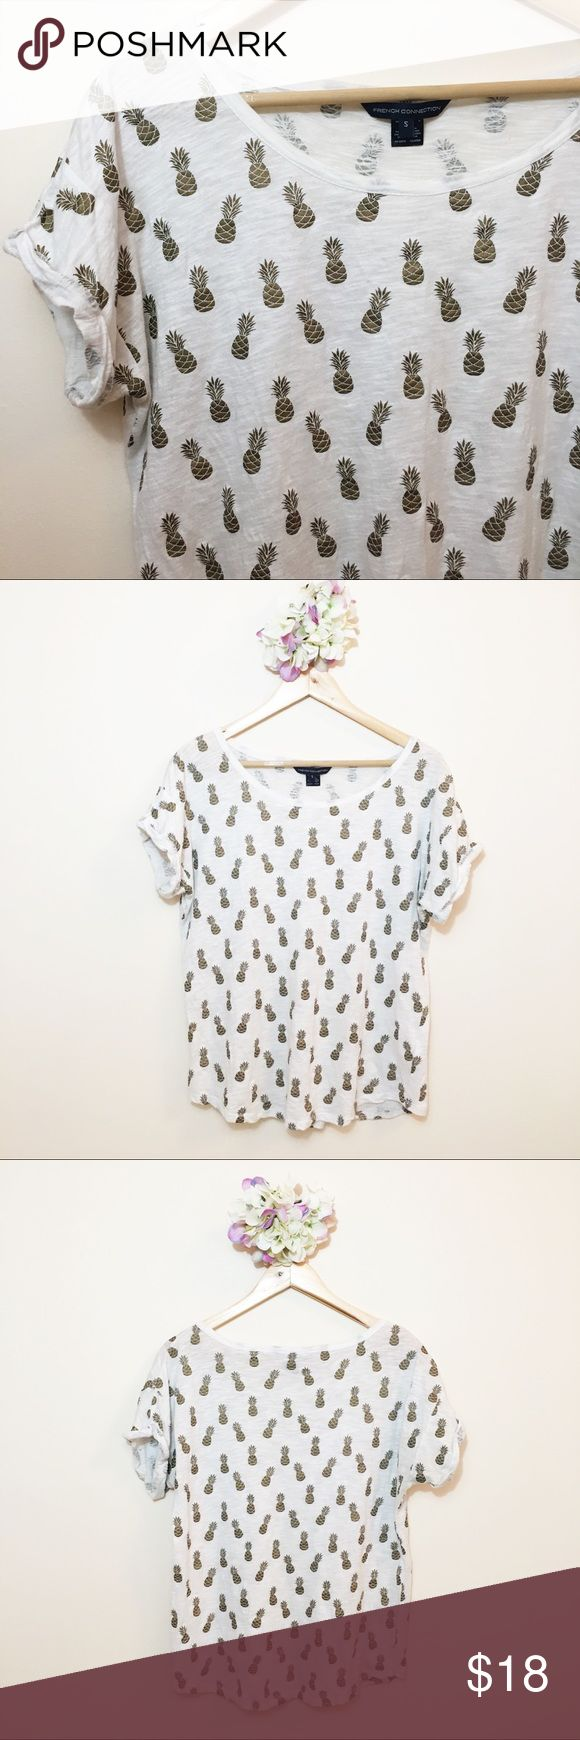 """French Connection Pineapple Short Sleeve Cuff Top EUC French Connection gold pineapple patterned short sleeve cuffed top in size small. Could fit a medium and a large.   100% cotton  Chest: 41"""" Length: 24"""" French Connection Tops Tees - Short Sleeve"""